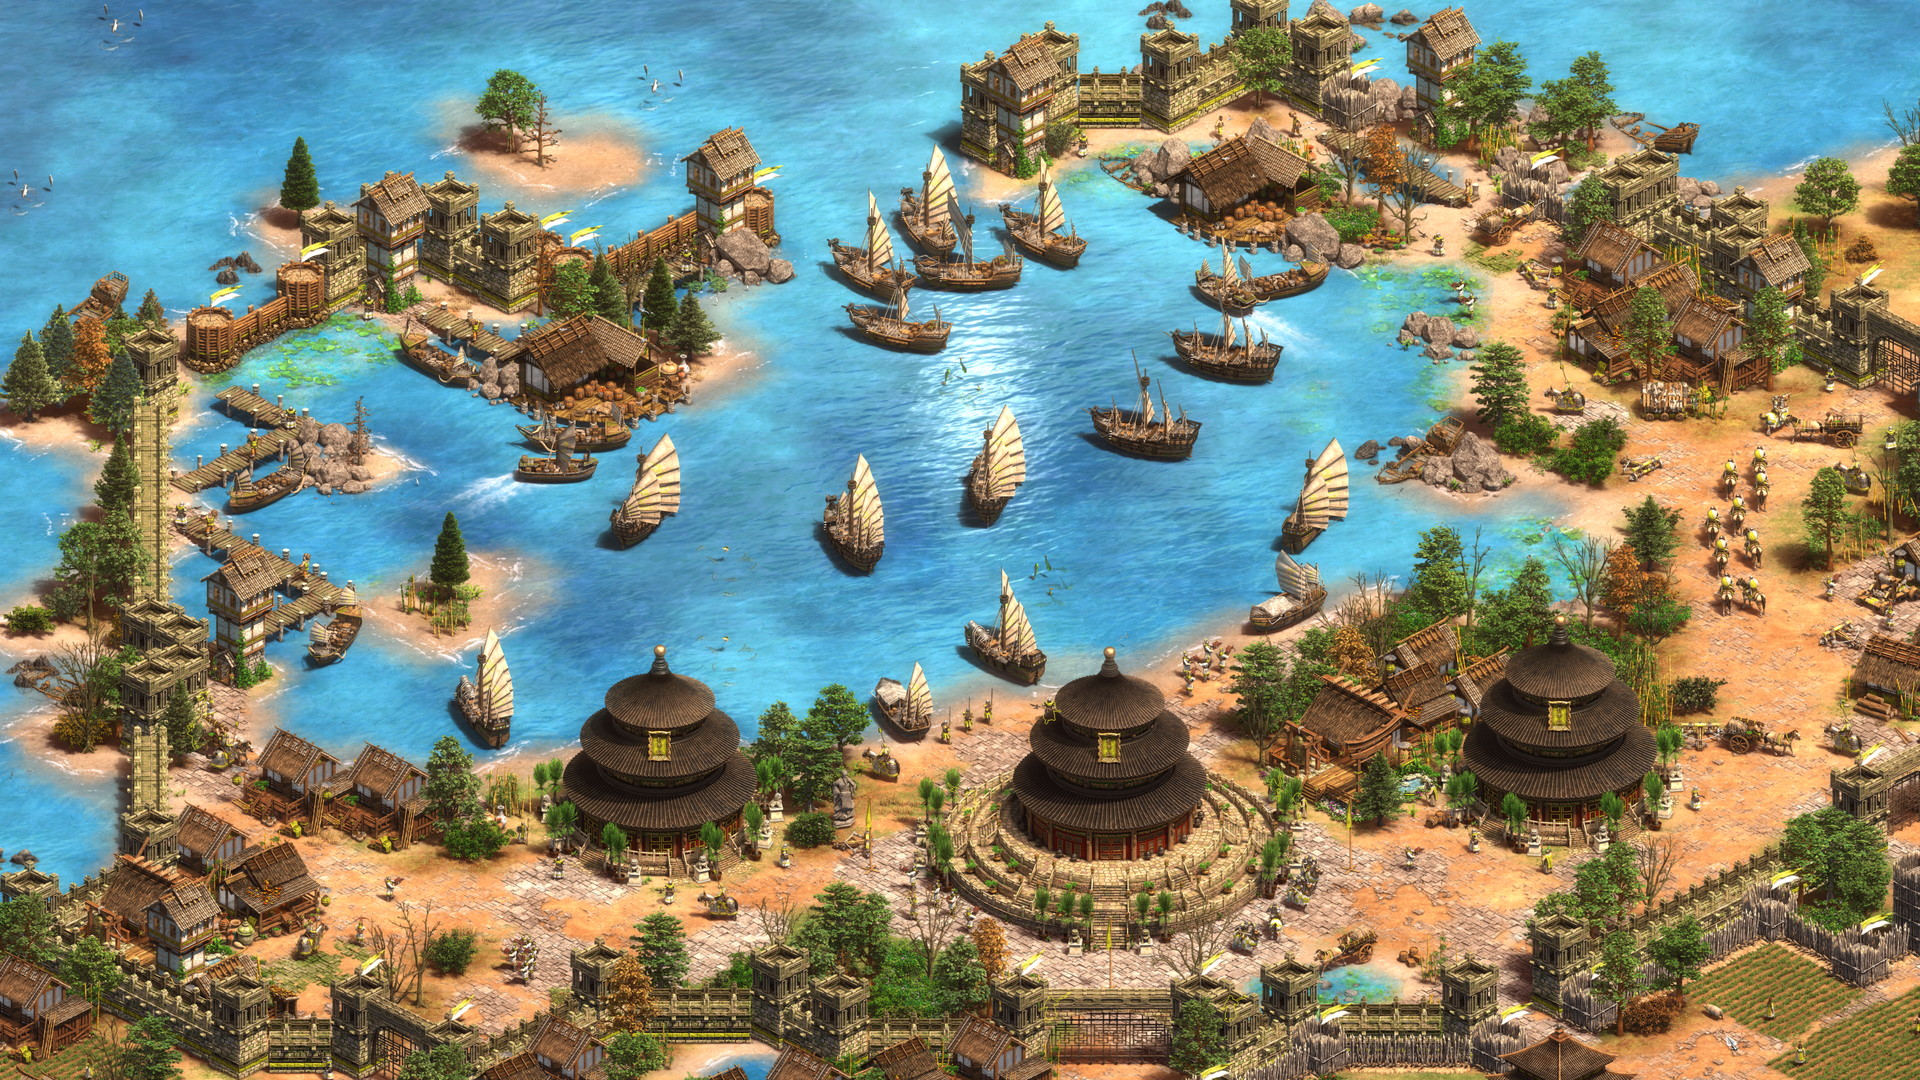 Age of Empires II: Definitive Edition - screenshot 10